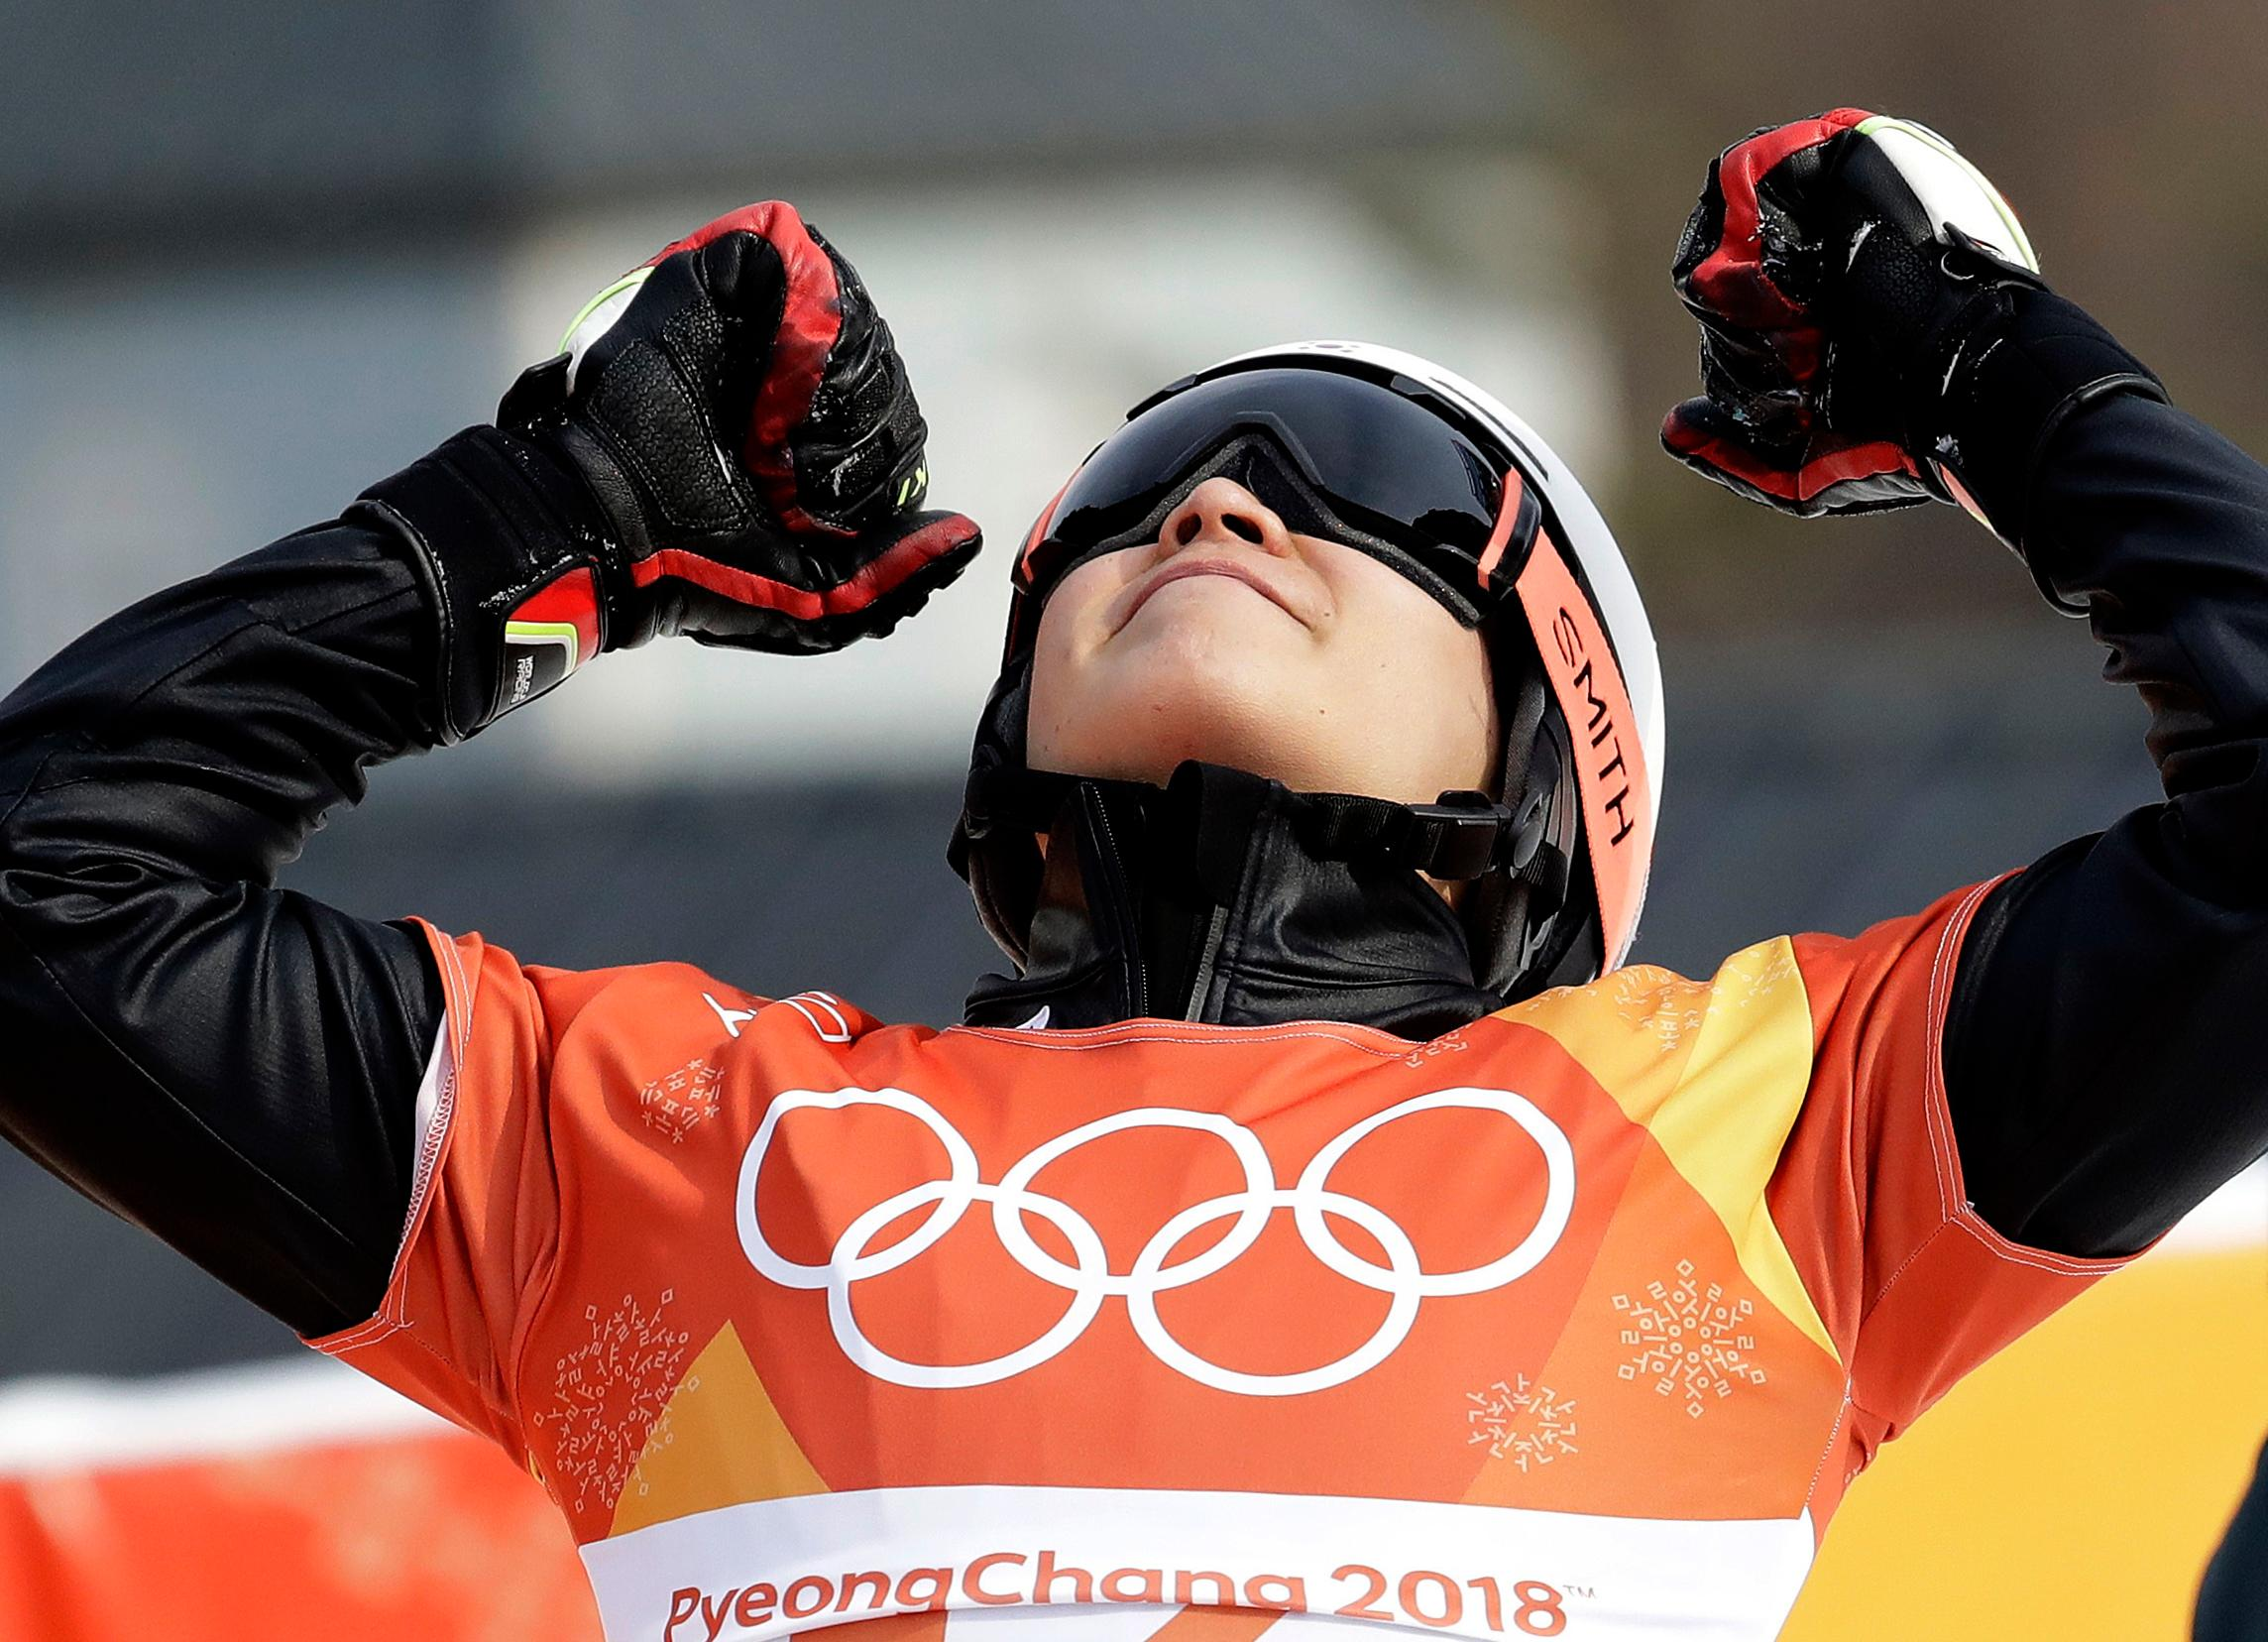 Silver medal winner Lee Sangho, of South Korea, celebrates after competing in the men's parallel giant slalom semifinal at Phoenix Snow Park at the 2018 Winter Olympics in Pyeongchang, South Korea, Saturday, Feb. 24, 2018. (AP Photo/Lee Jin-man)